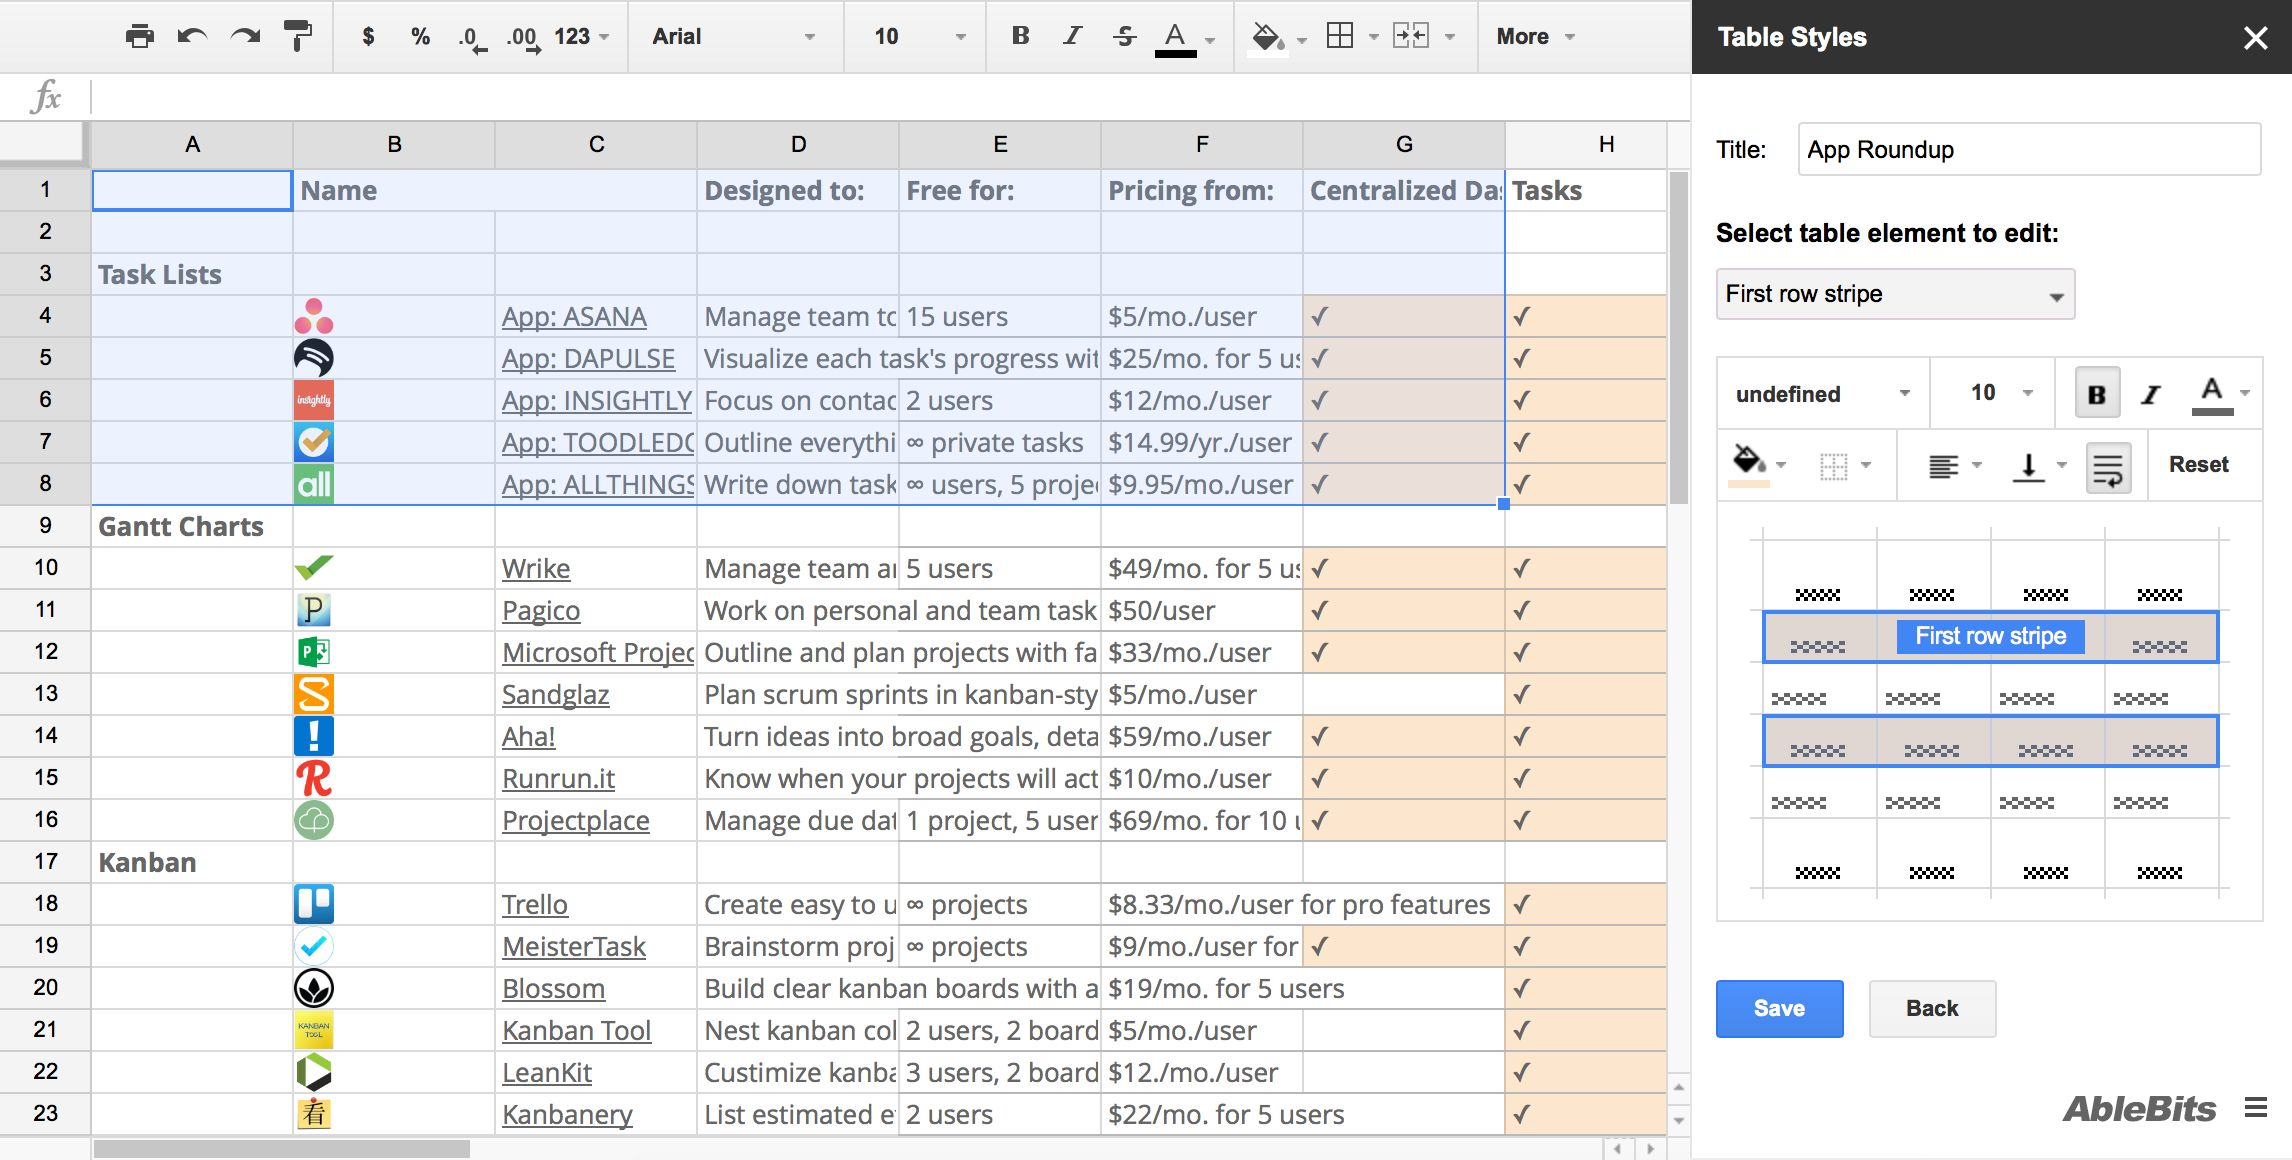 Google Sheets Table Styles